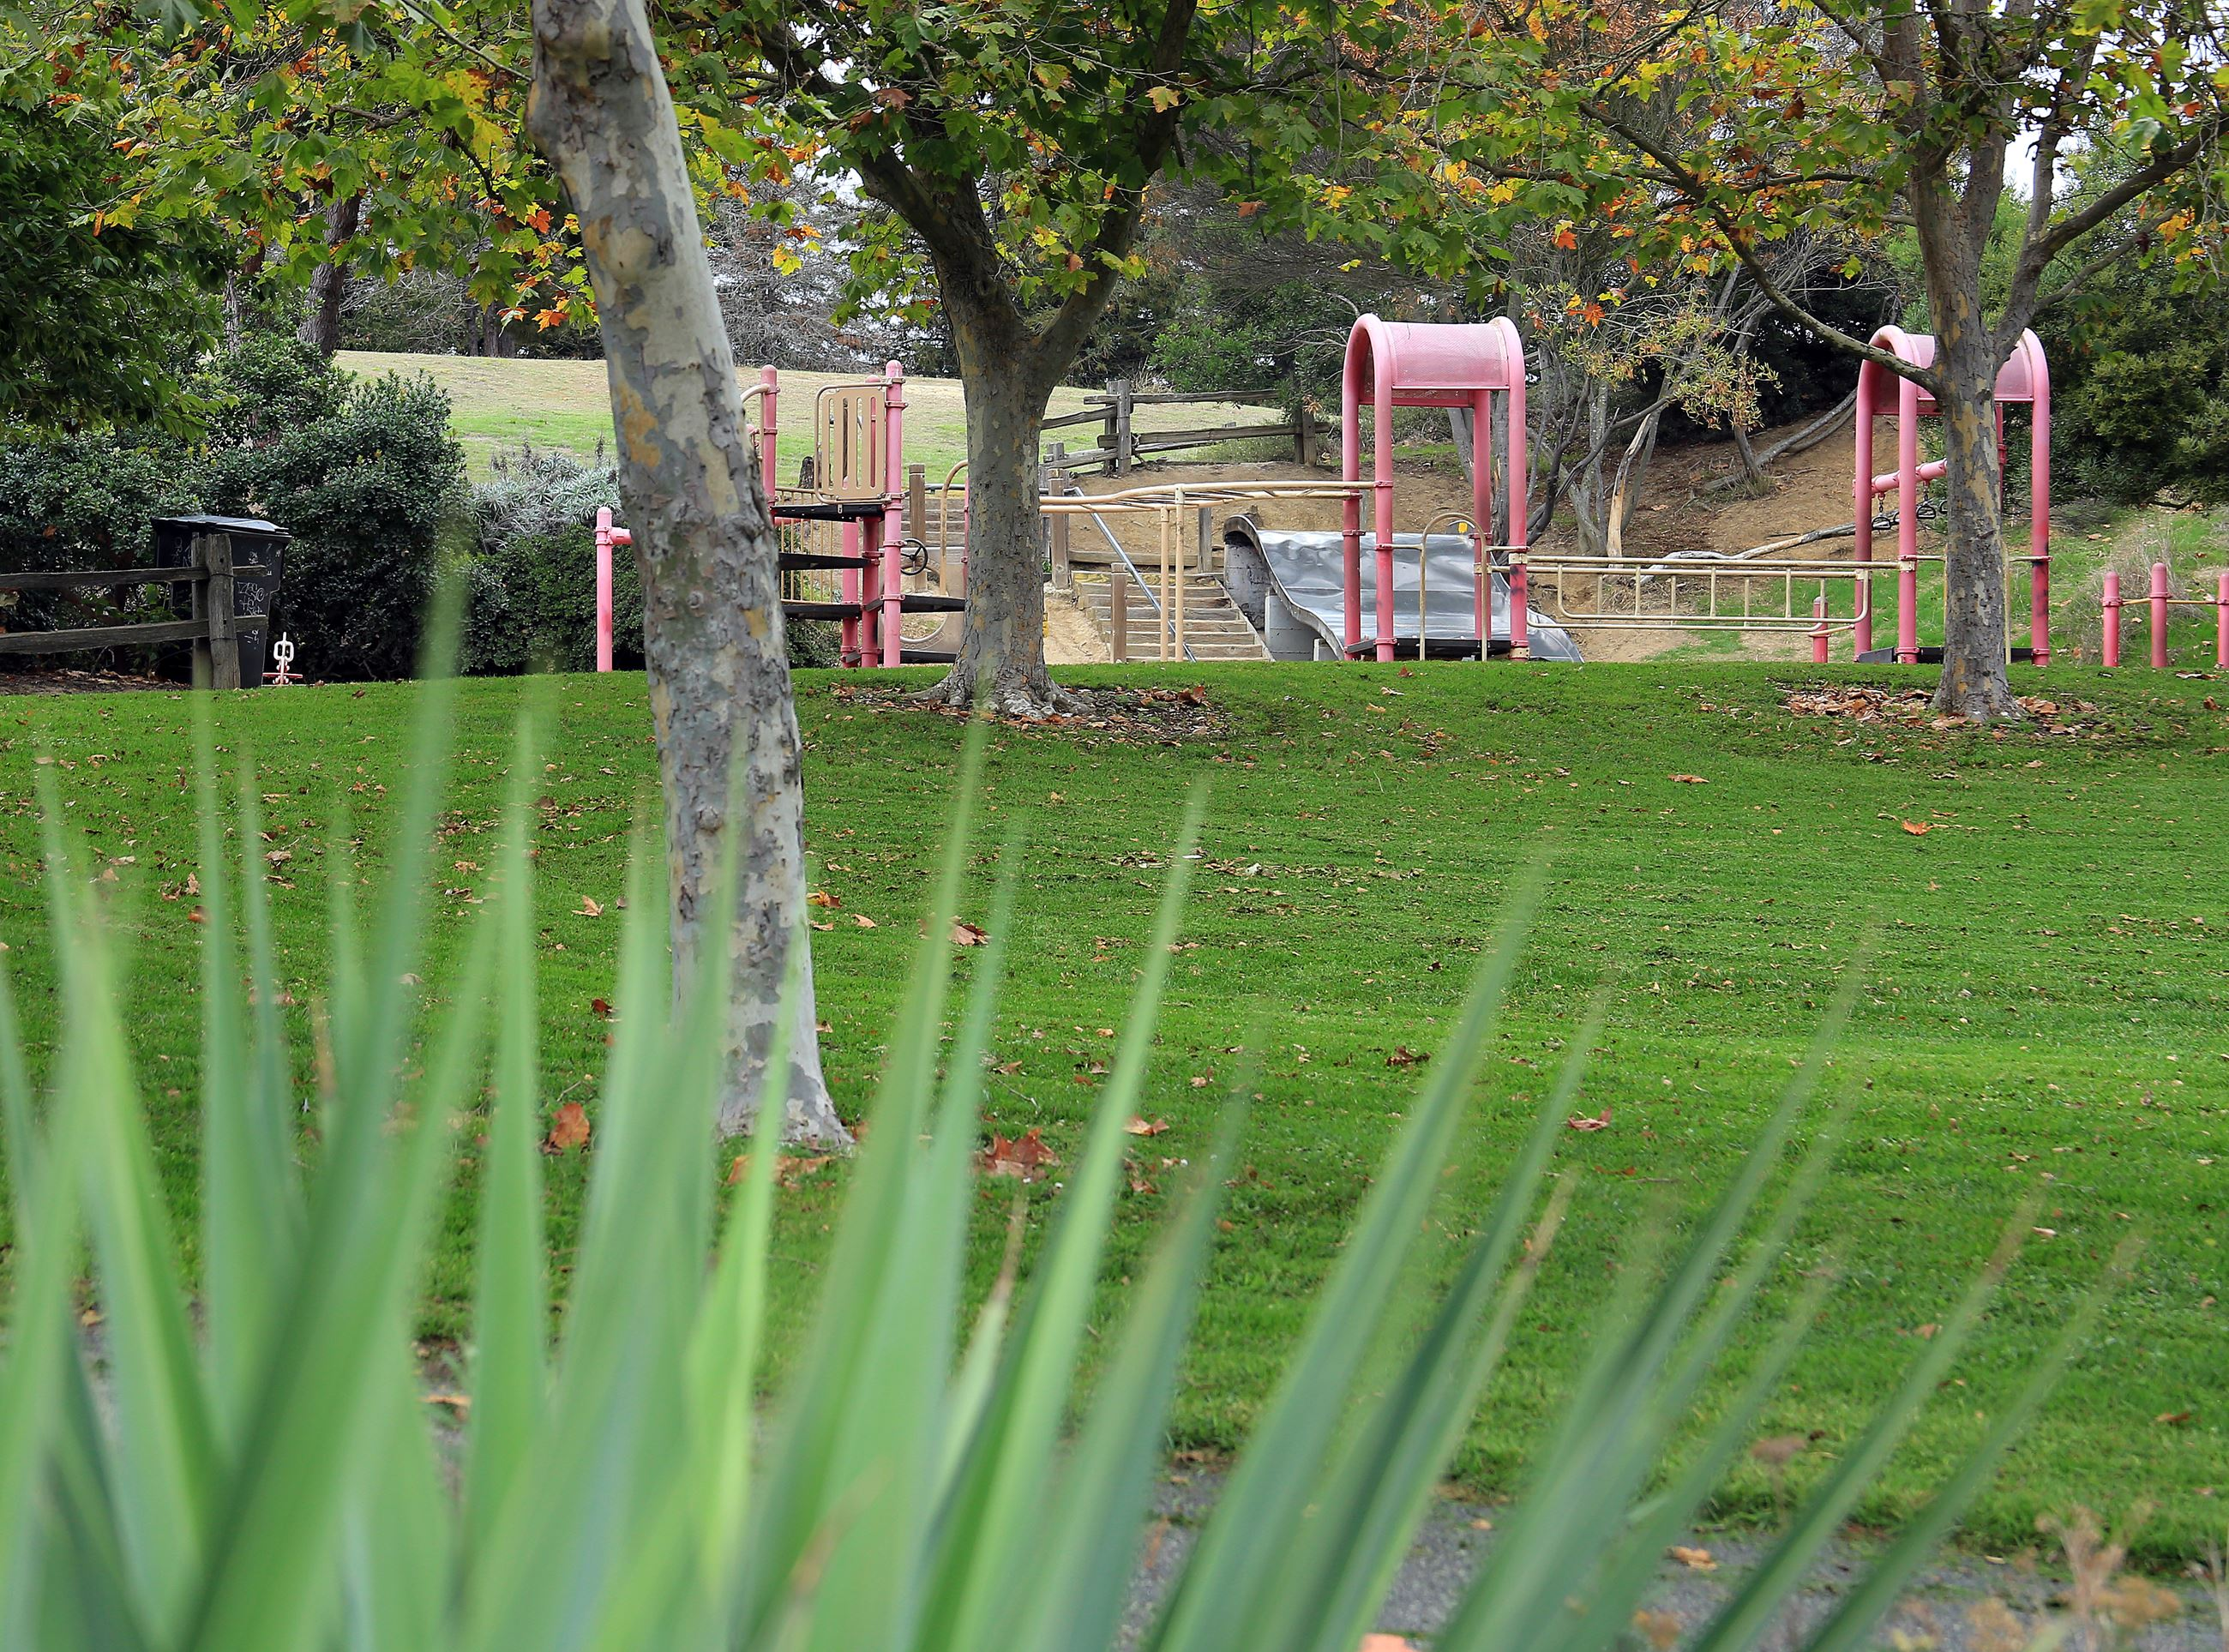 Playground structure and greenspace at Ramsay park